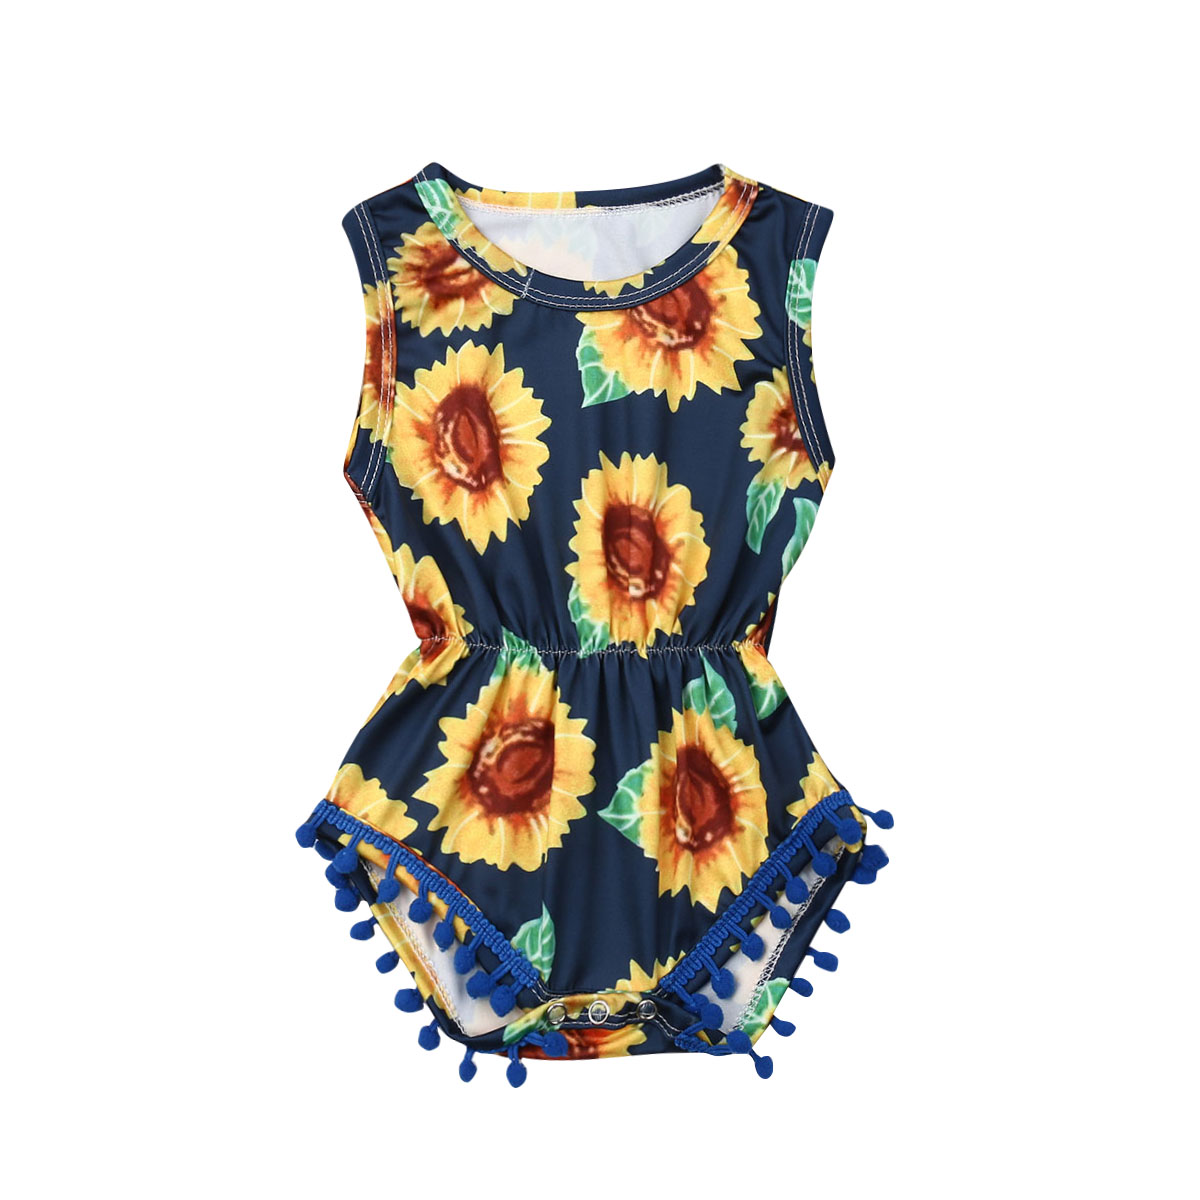 Newborn Baby Girl Sunflower Tassel Romper One-pieces Jumpsuit Toddler Infant Baby Sun Flower Print Outfit Clothes 0-18M